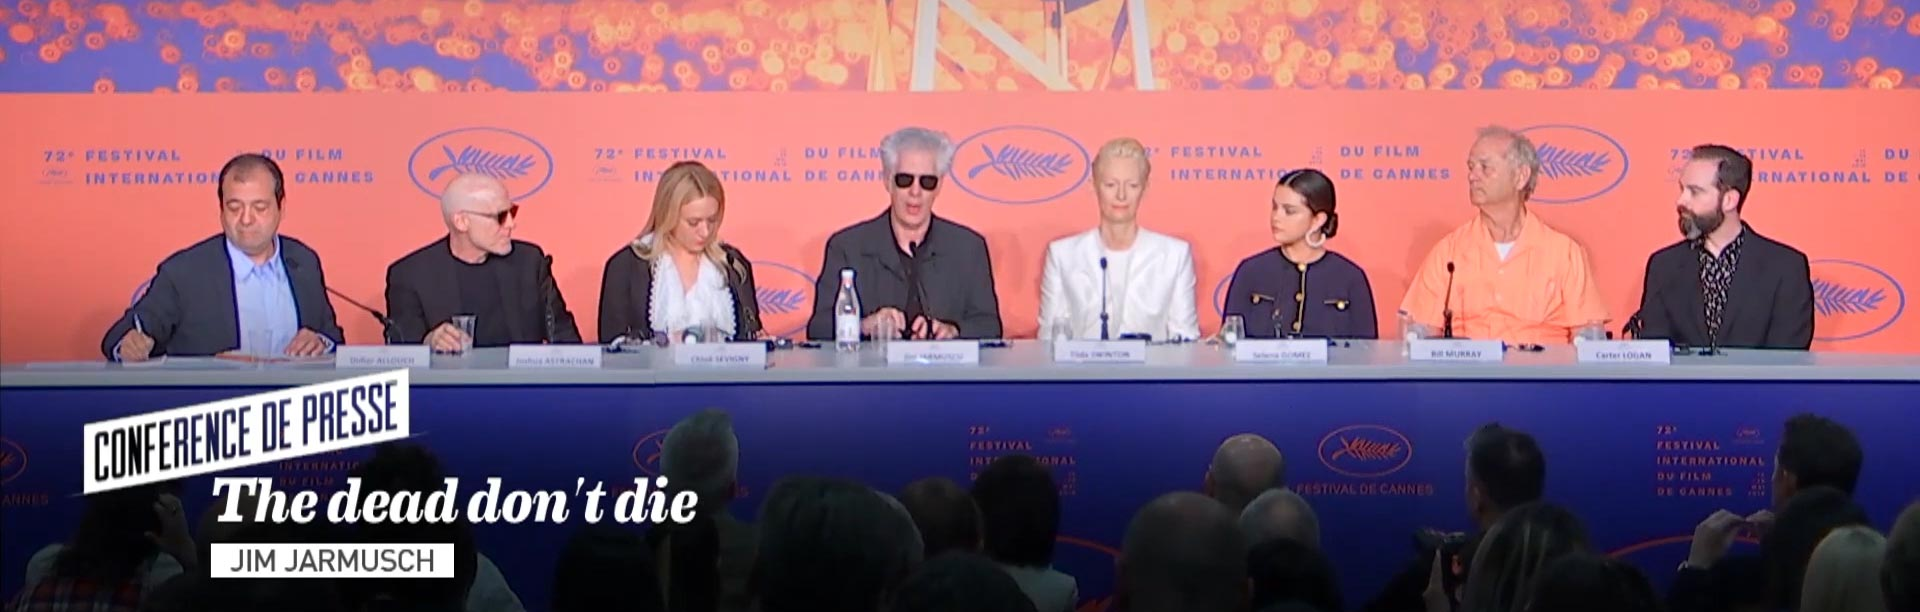 Cannes 2019: The Dead Don't Die's Selena Gomez, Bill Murray, Tilda Swinton, Chloe Sevigny, and Jim Jarmusch Talk Zombies and Their Favourite Horror Movies